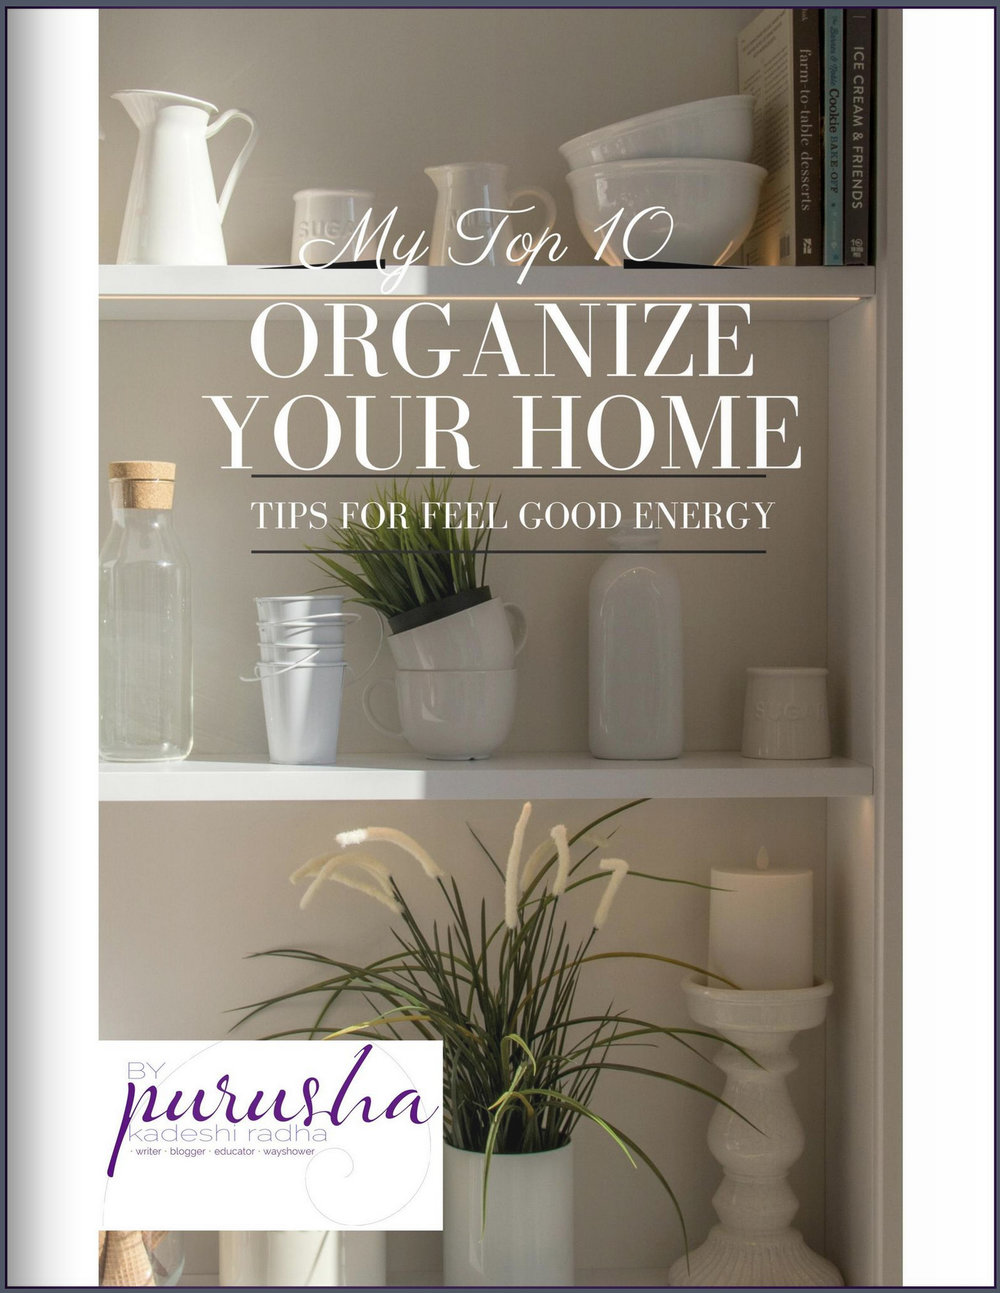 Top 10 Organize Your Home Tips free e-book